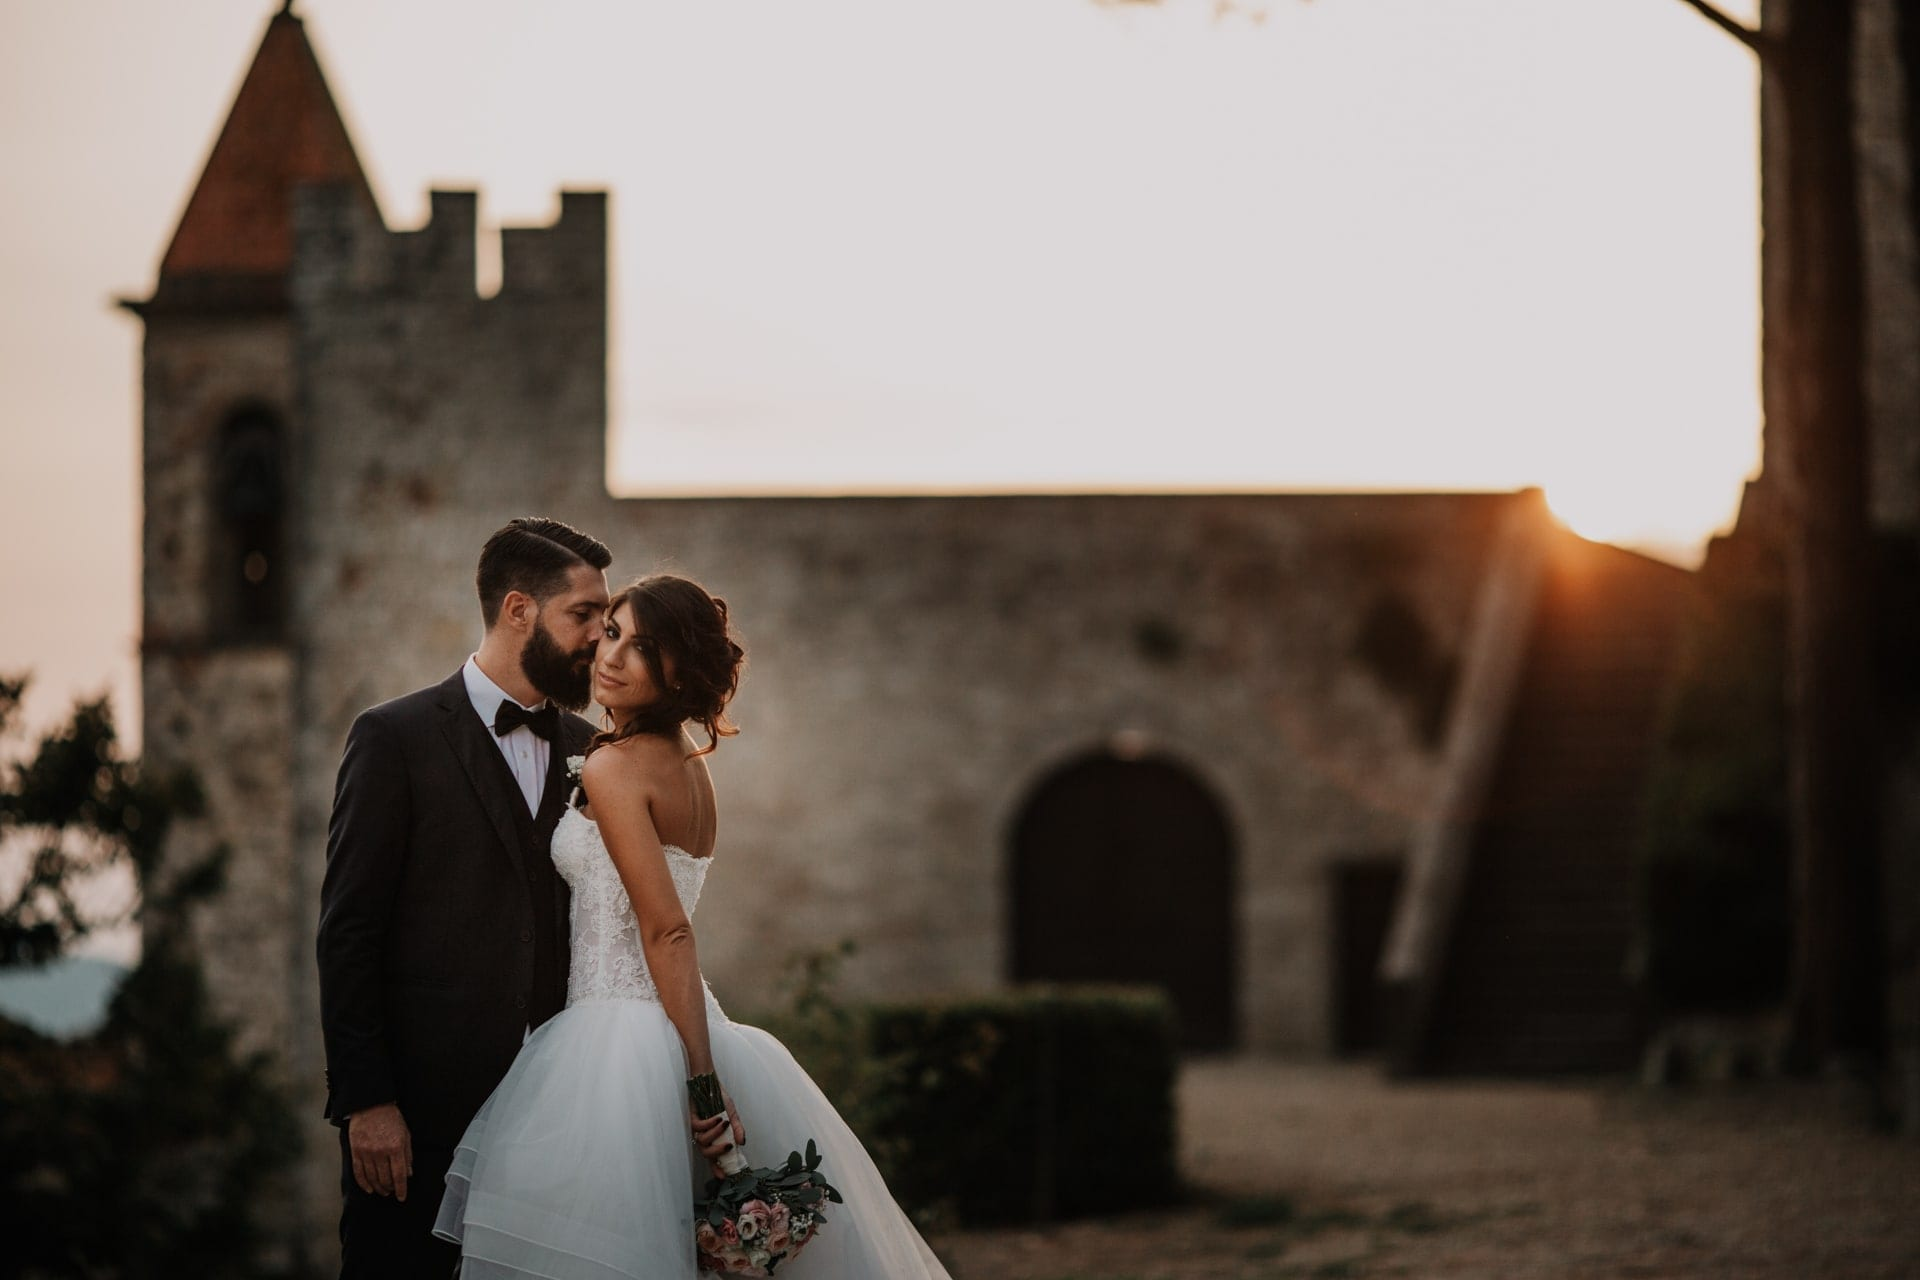 https://s3-eu-central-1.amazonaws.com/righiphotography-com/wp-content/uploads/2020/02/02183304/Wedding-Photo-Perfect-Mix-Studio-Fotografico-Righi-RIGHI-3.jpg